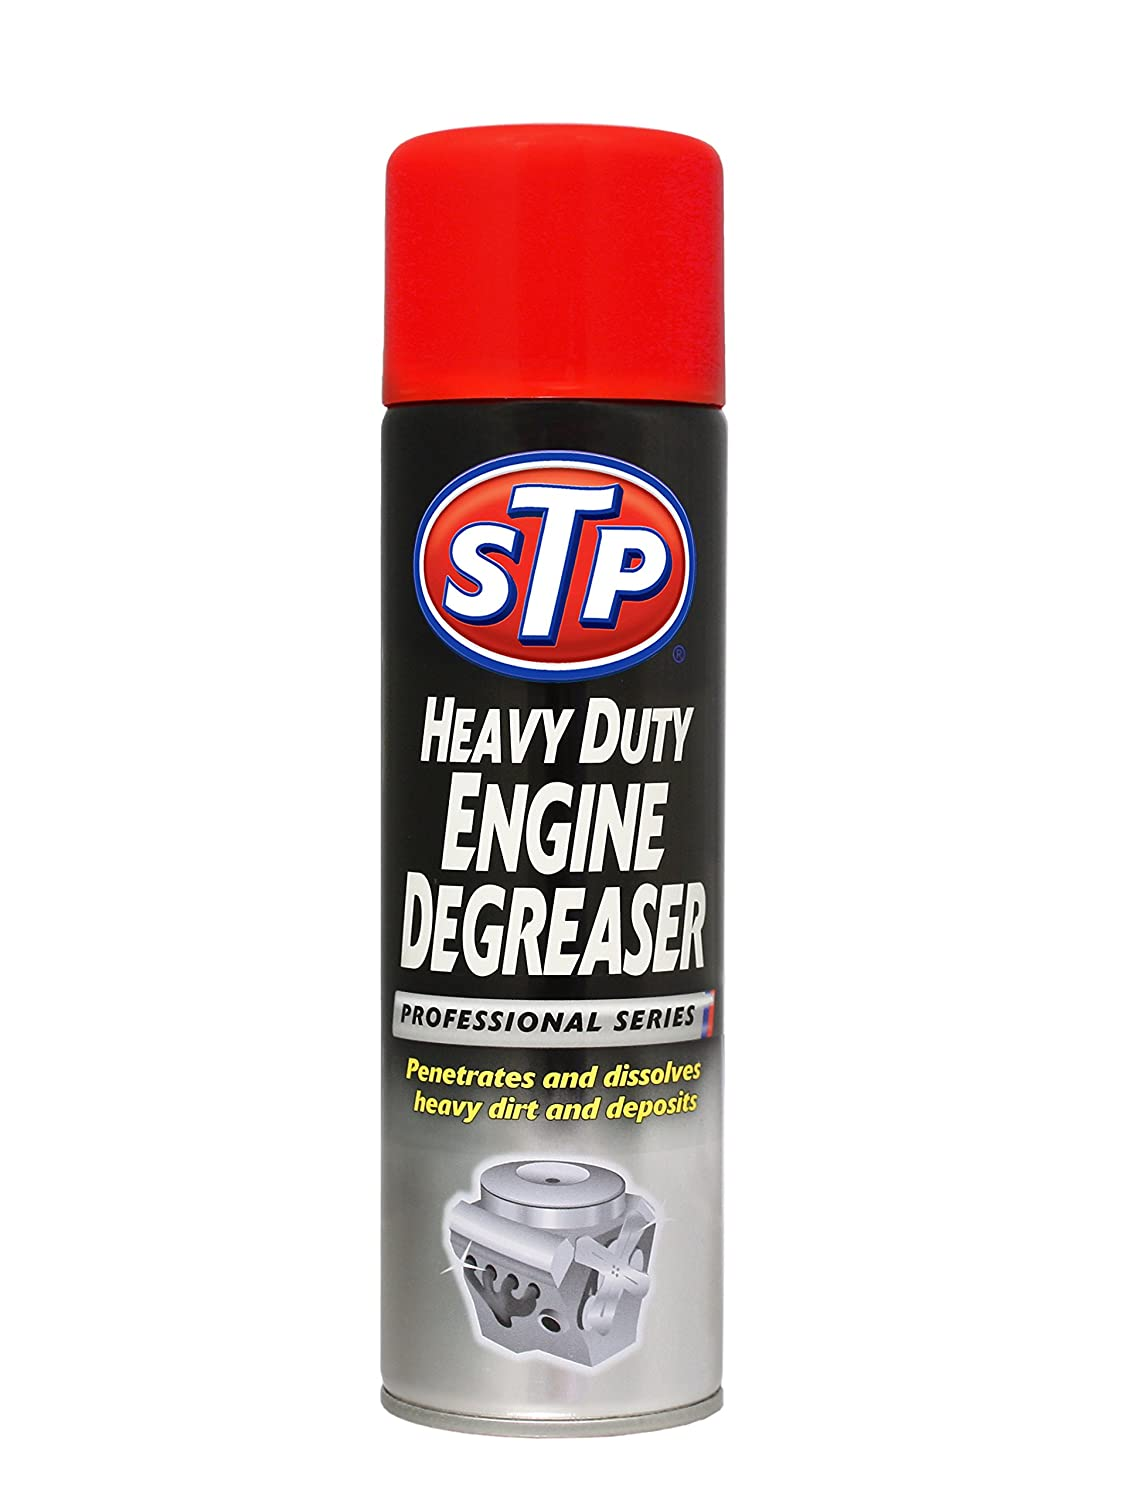 LOT of 6 Next Dimension ENGINE DEGREASER NEW